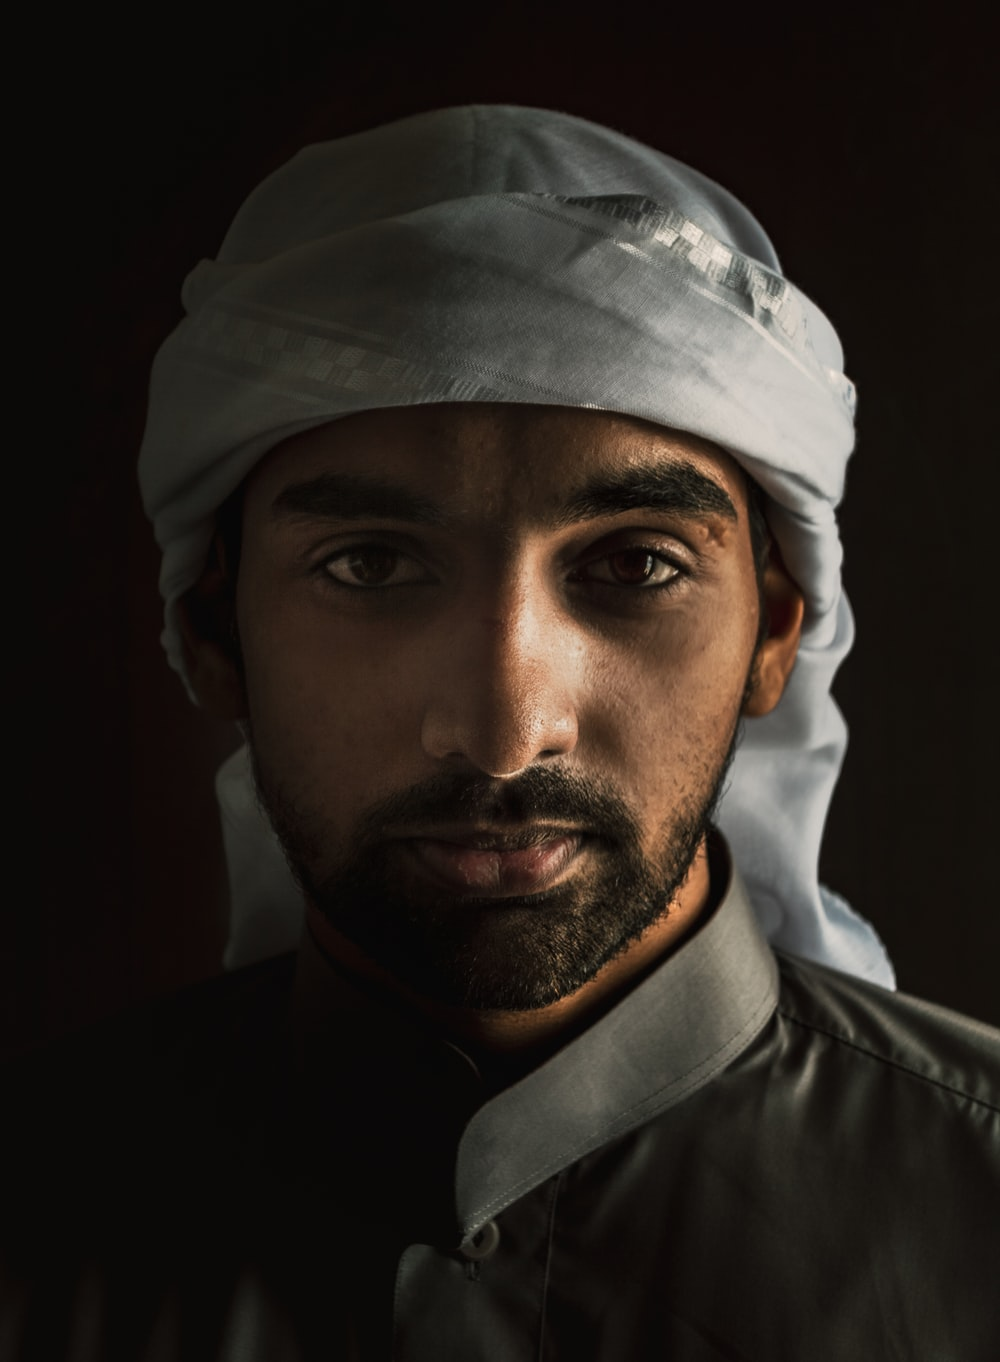 man in white turban and black suit